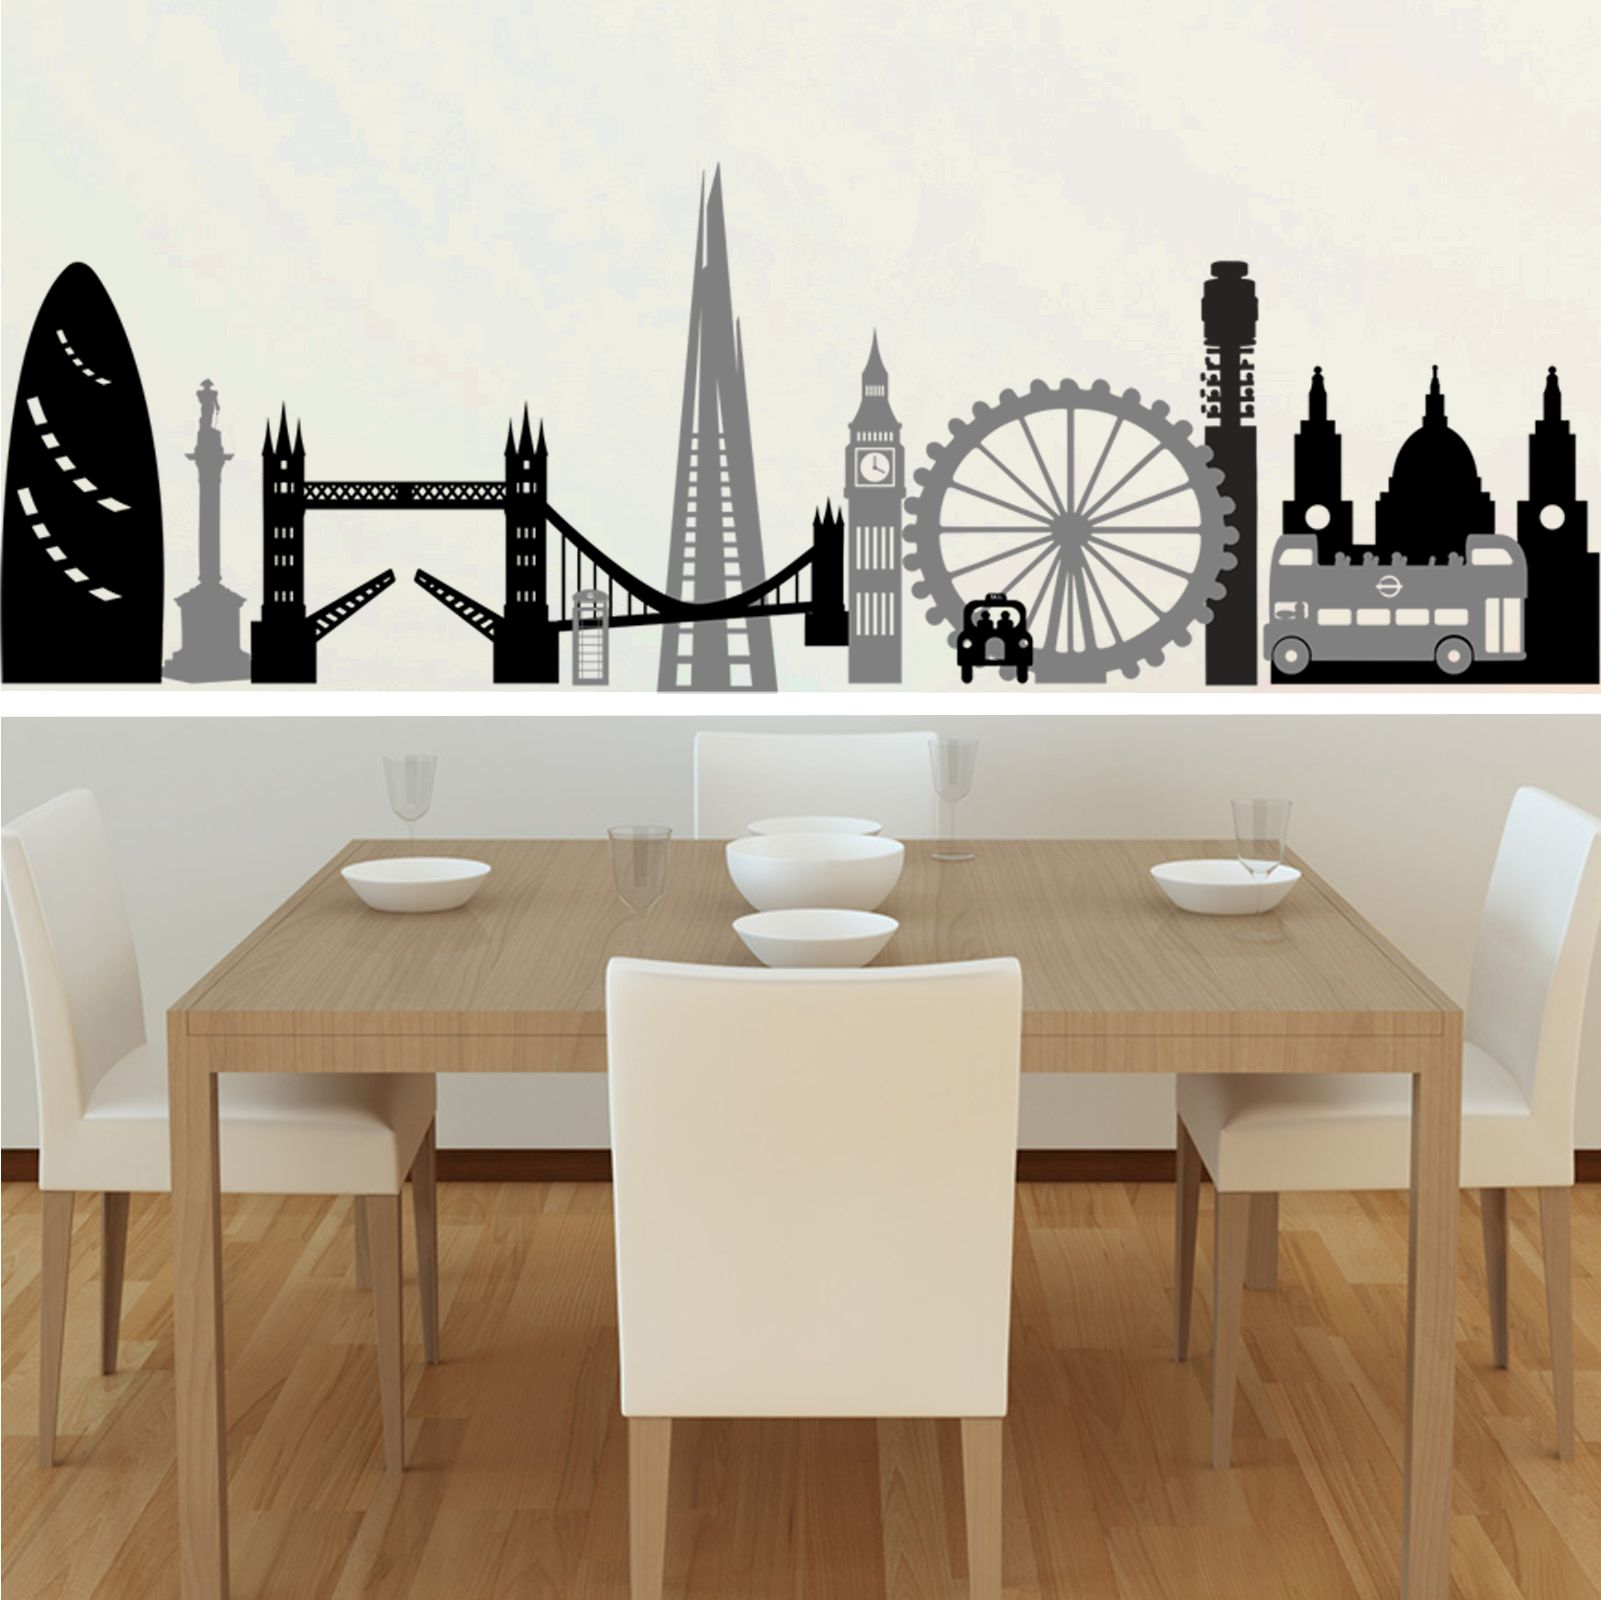 Black And Dark Grey London Montage Wall Decal In A Dining Room